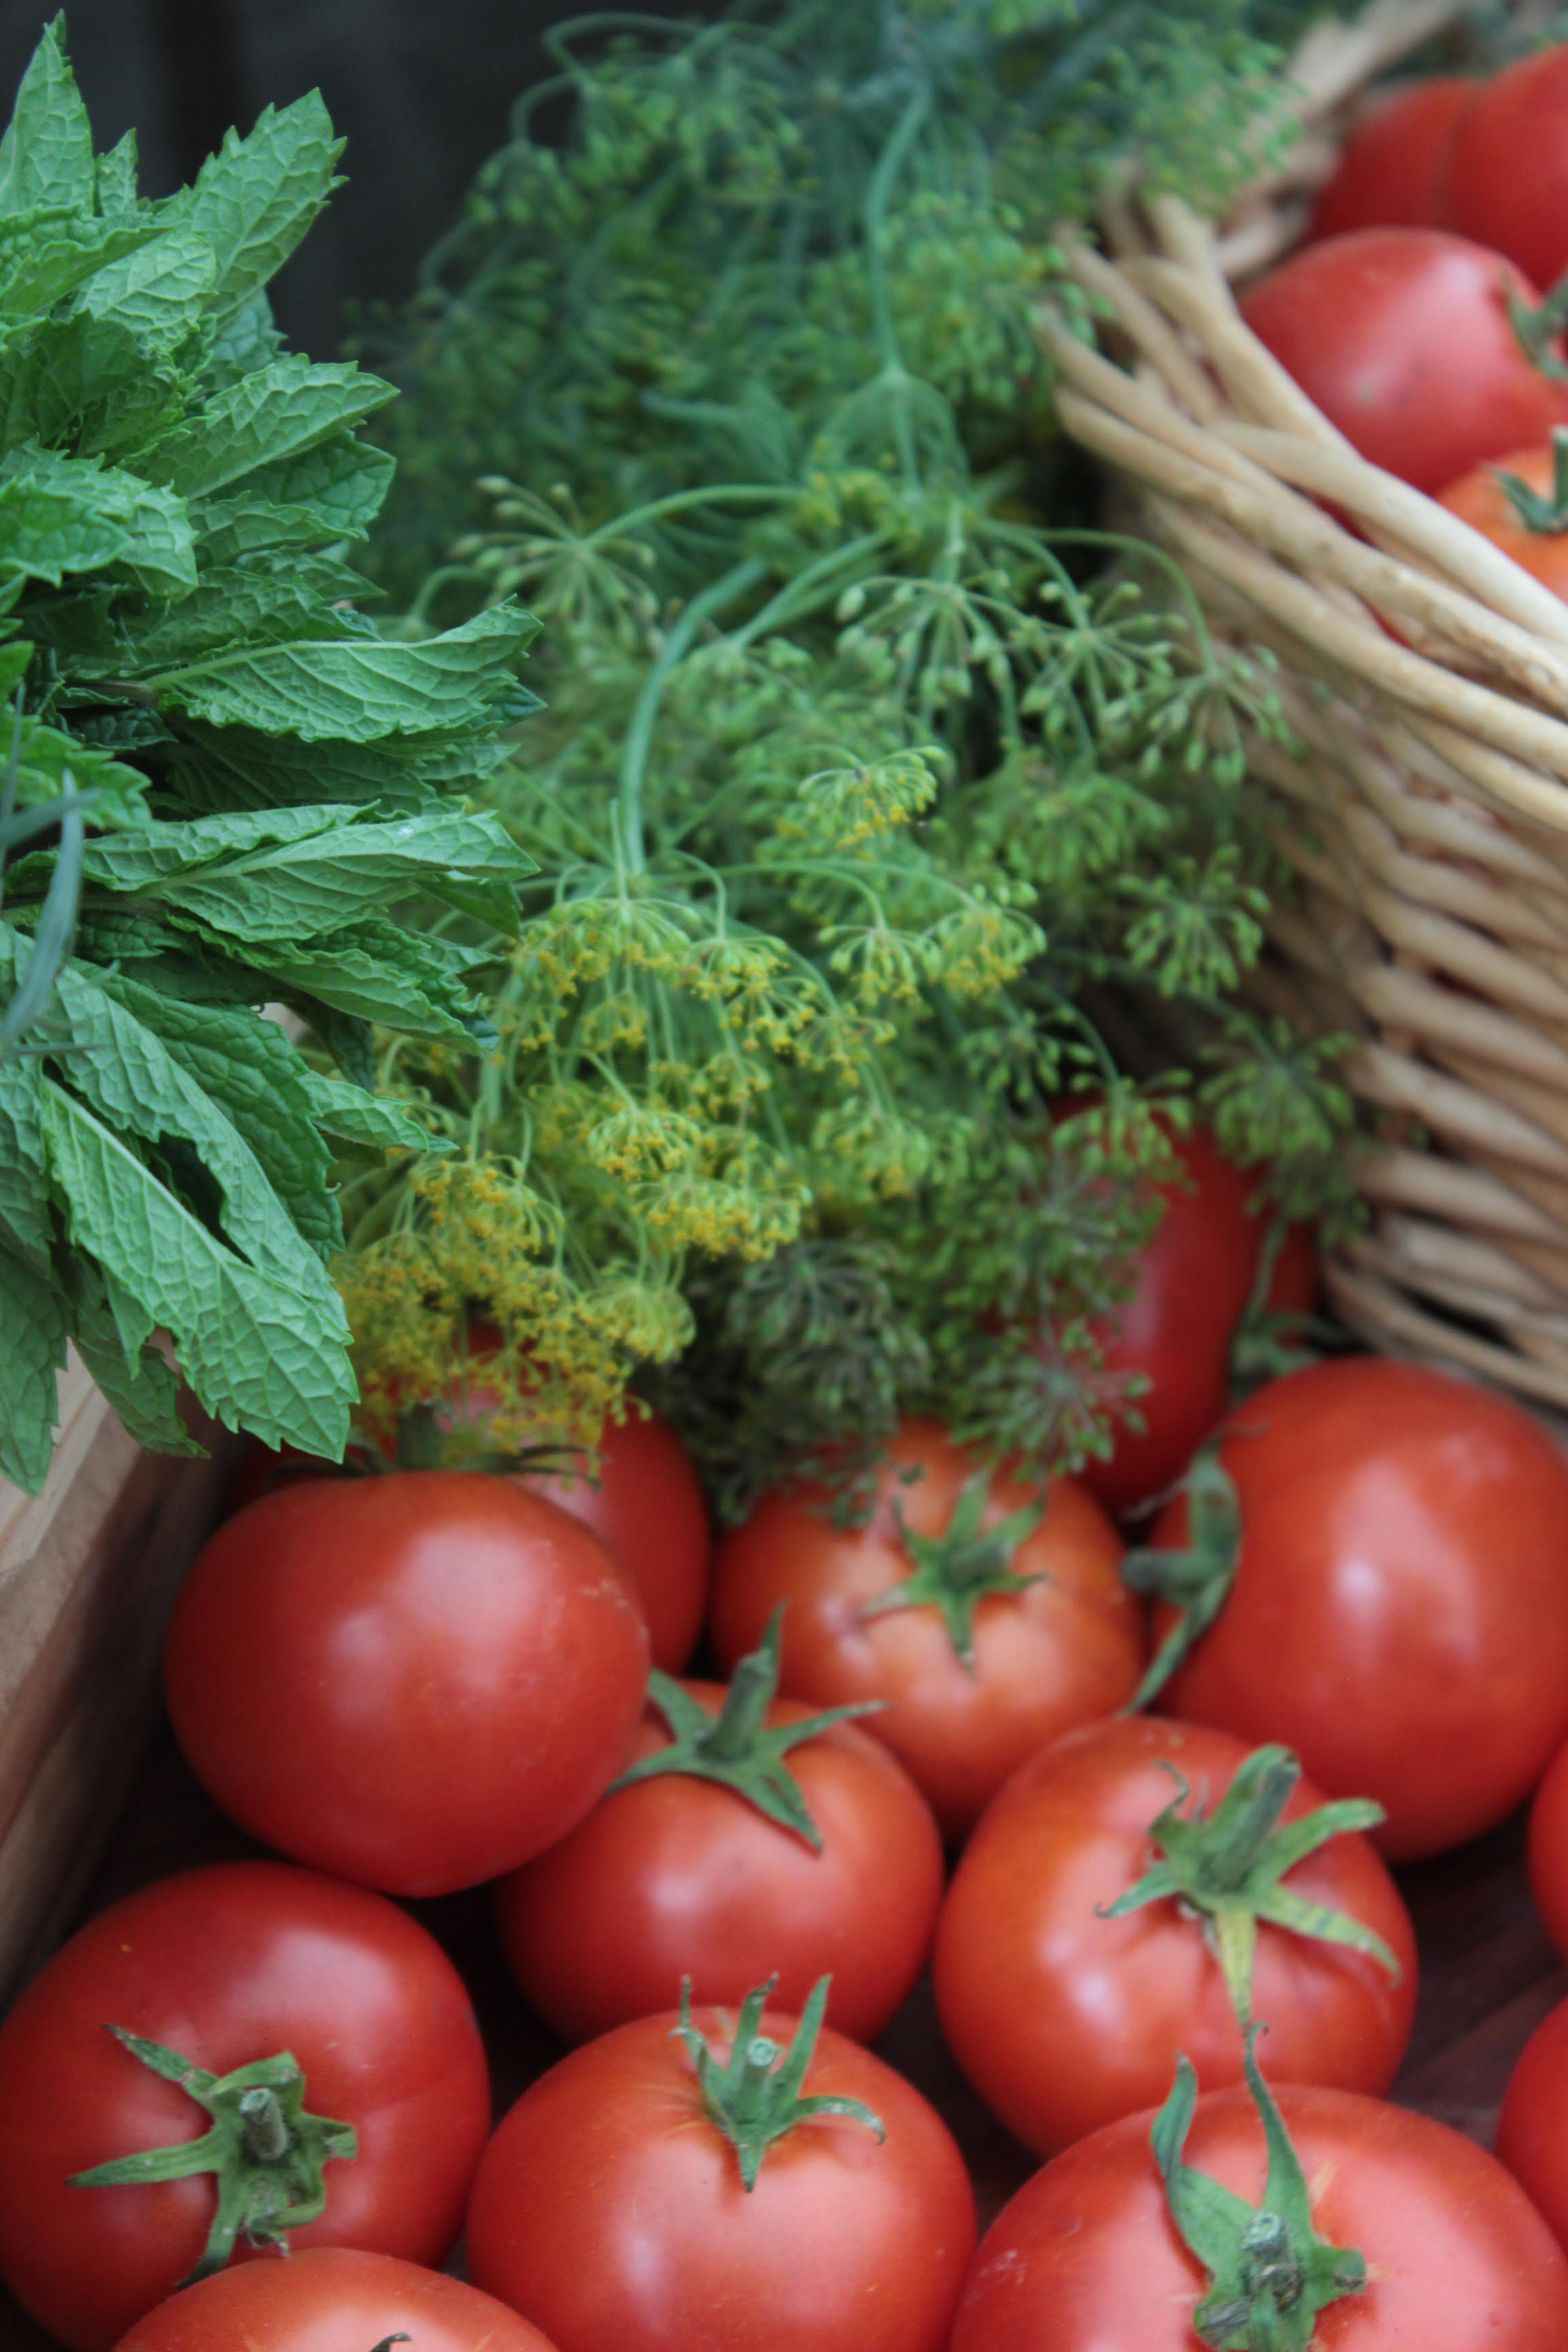 Fresh mint leaves, fresh fennel sprigs, and fresh red tomatoes in wicker baskets at farmers markets